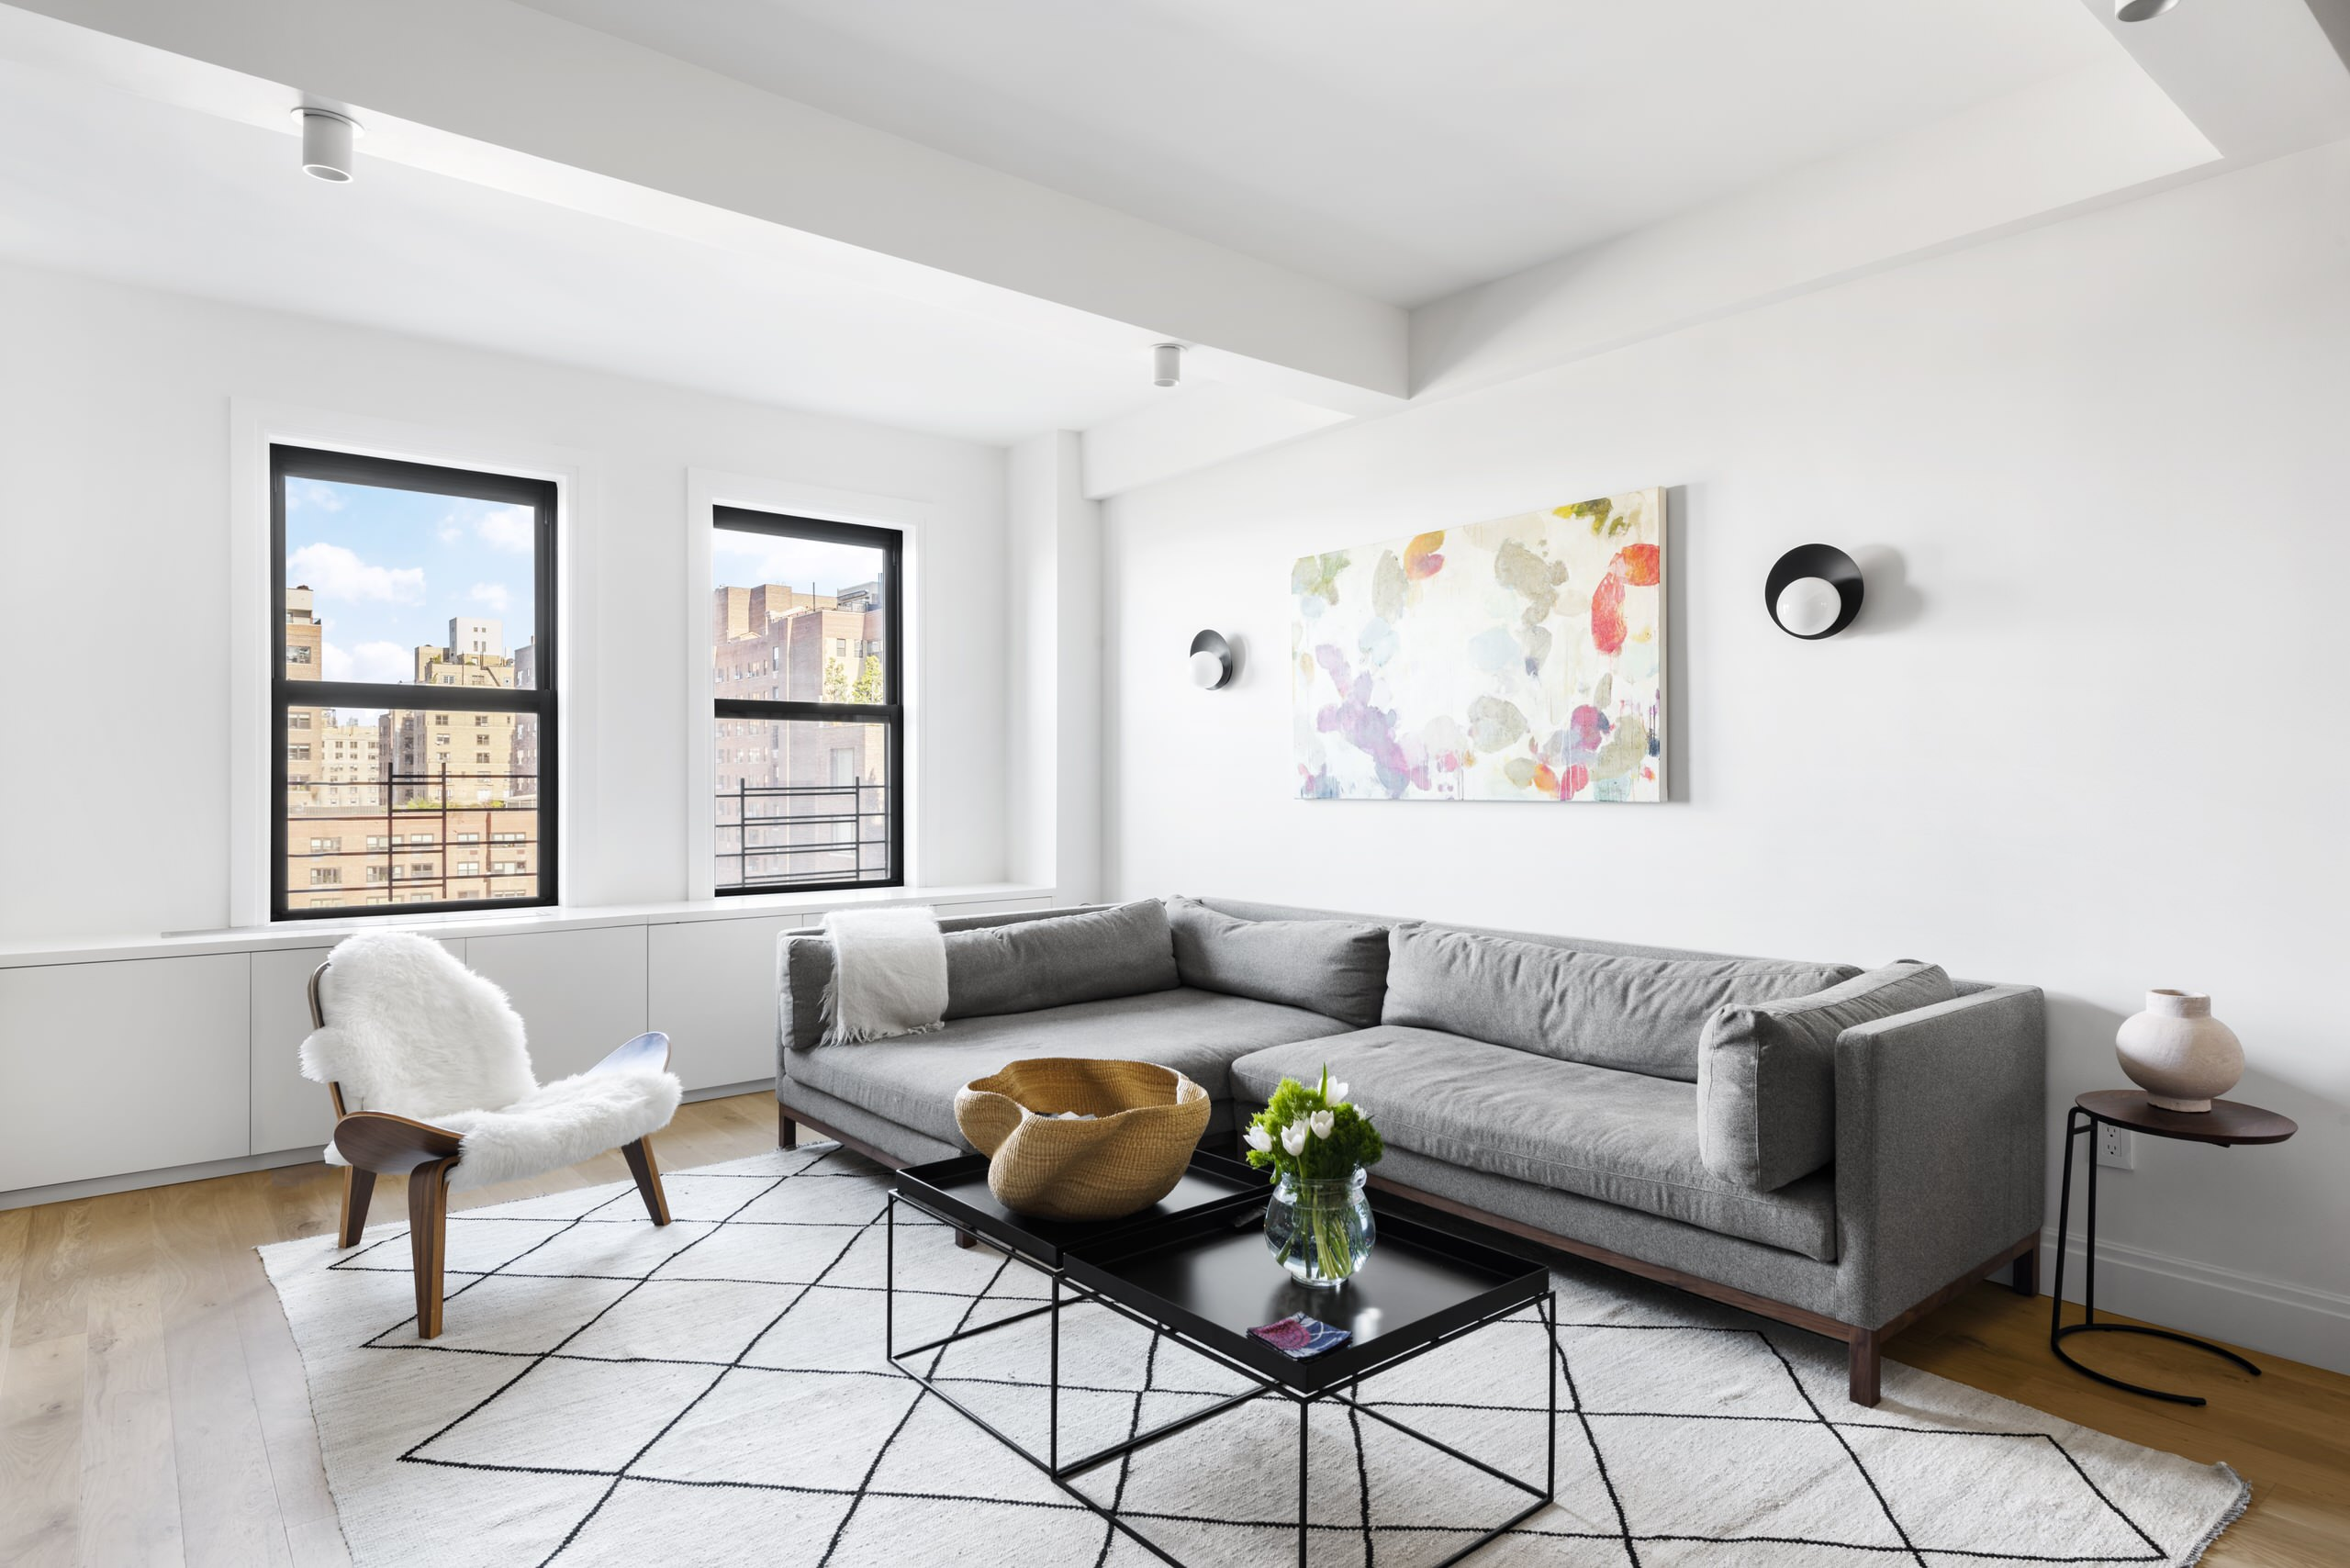 75 Beautiful White Living Room Pictures Ideas January 2021 Houzz